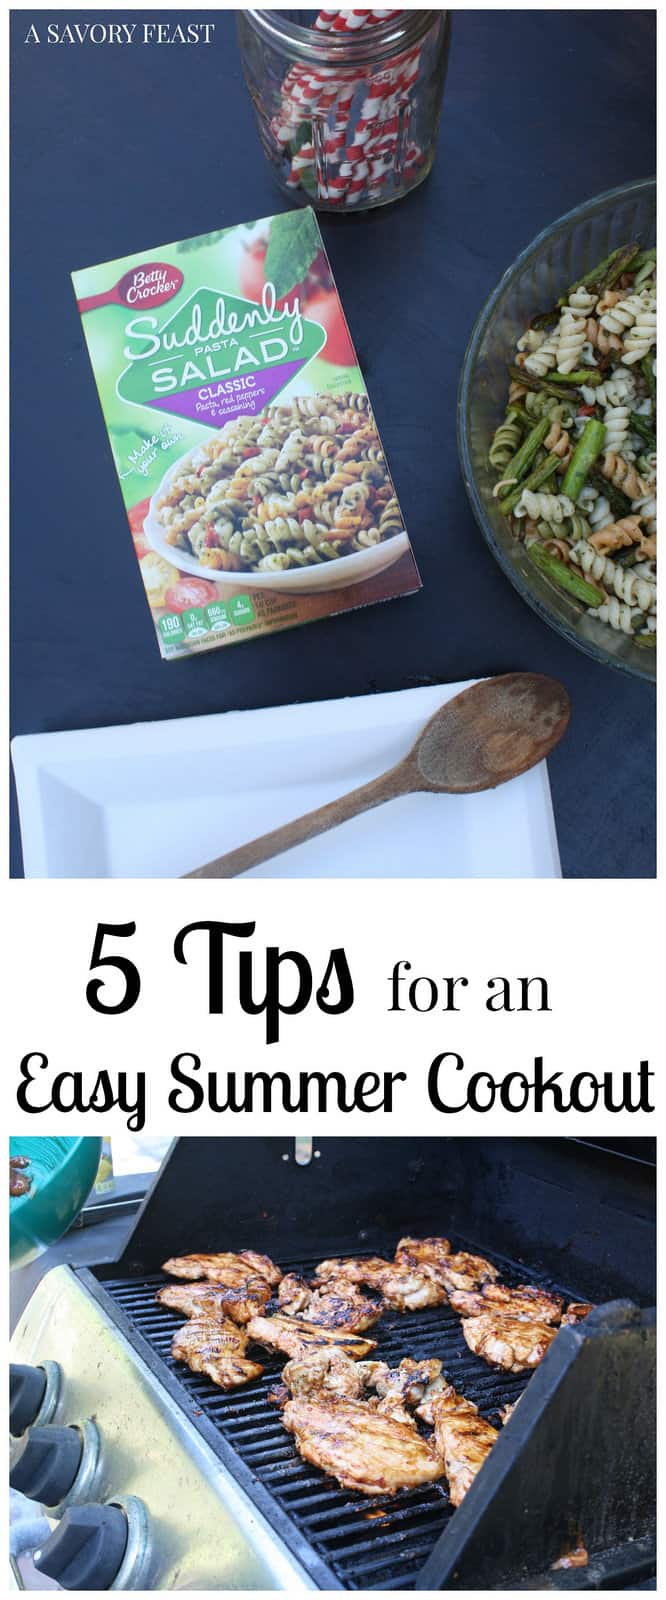 5 Tips for an Easy Summer Cookout